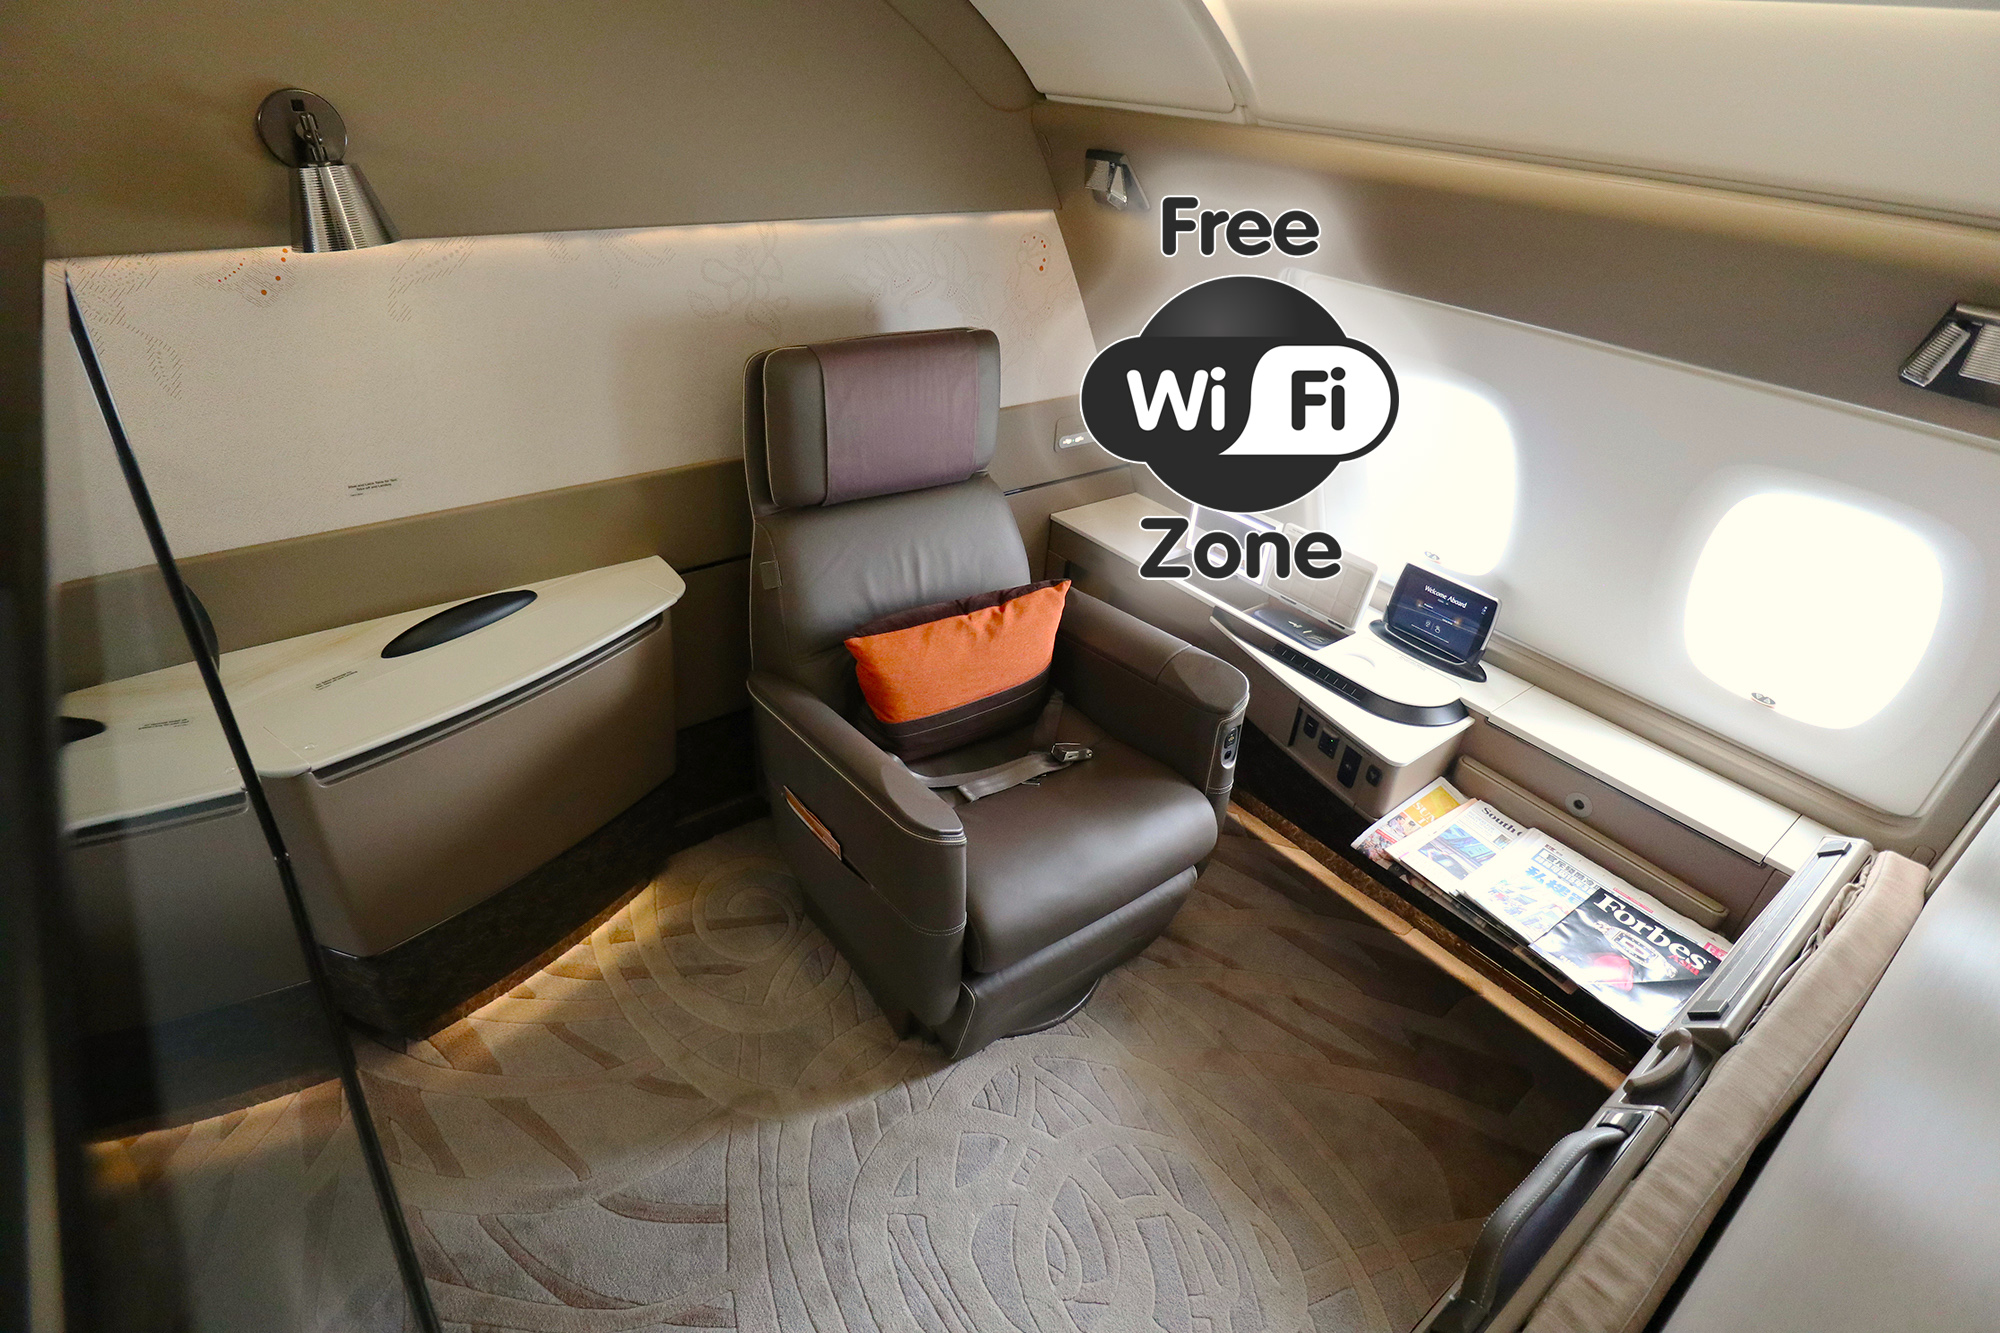 Singapore Airlines now offers free Wi-Fi in First Class, 100MB in Business